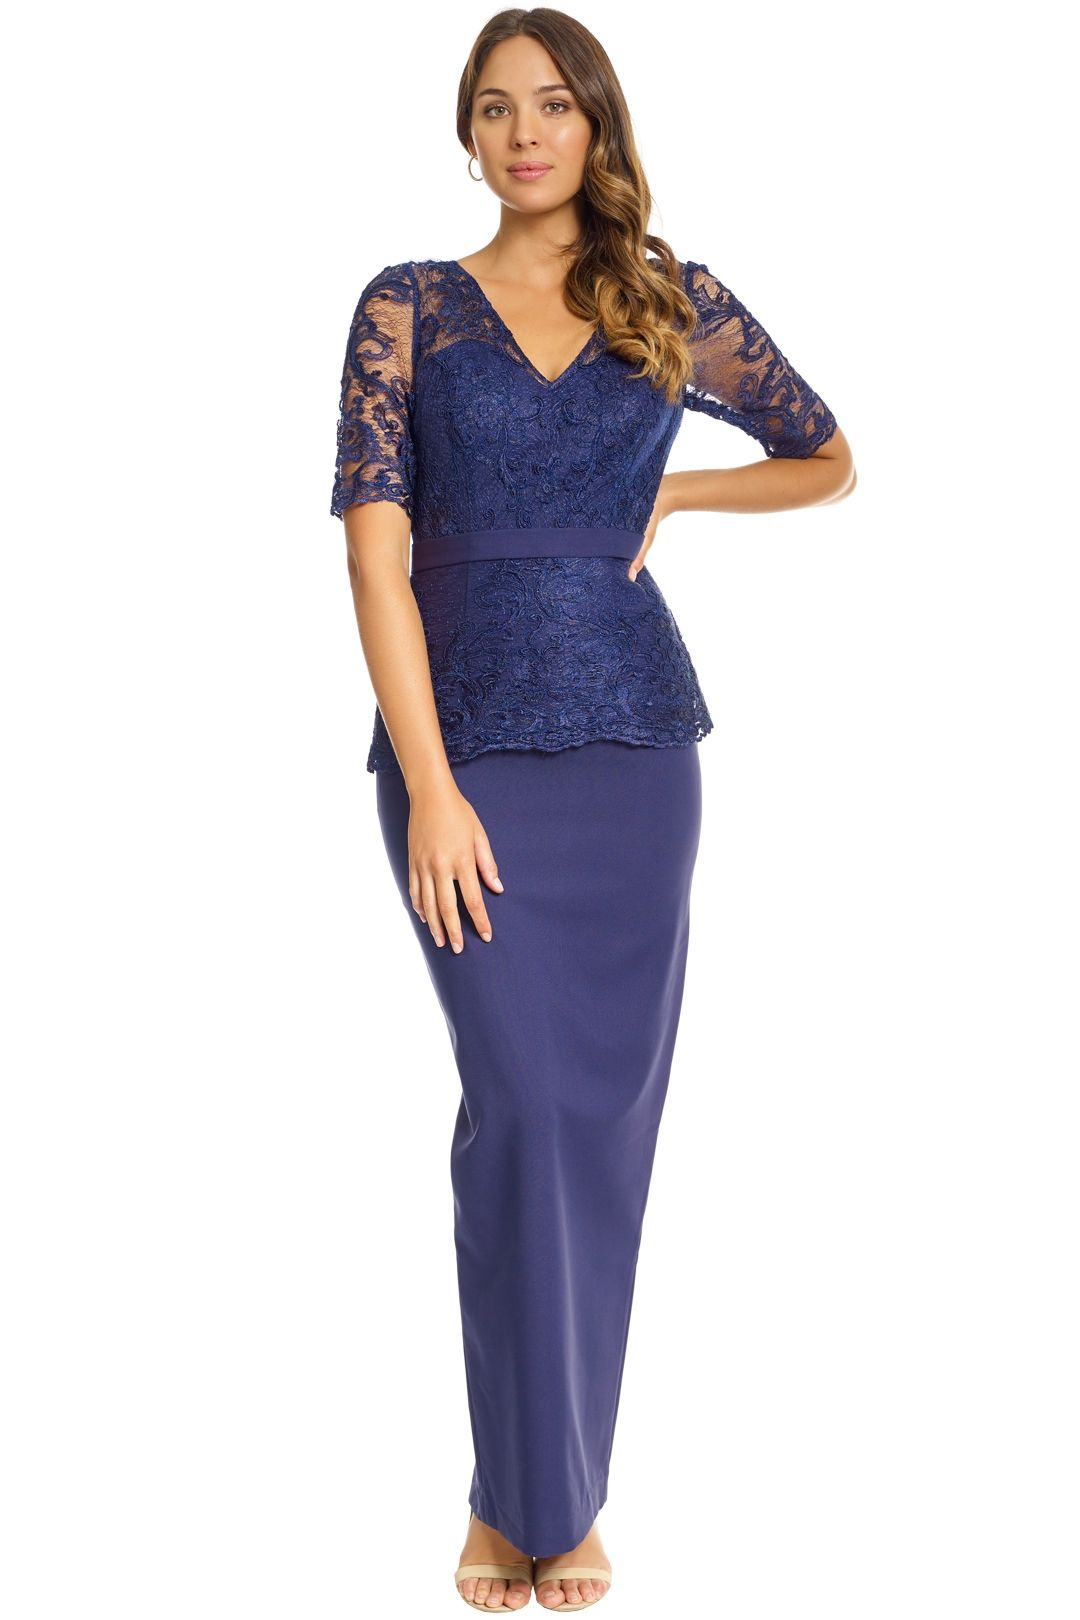 Jadore - Talia Dress - Navy - Front